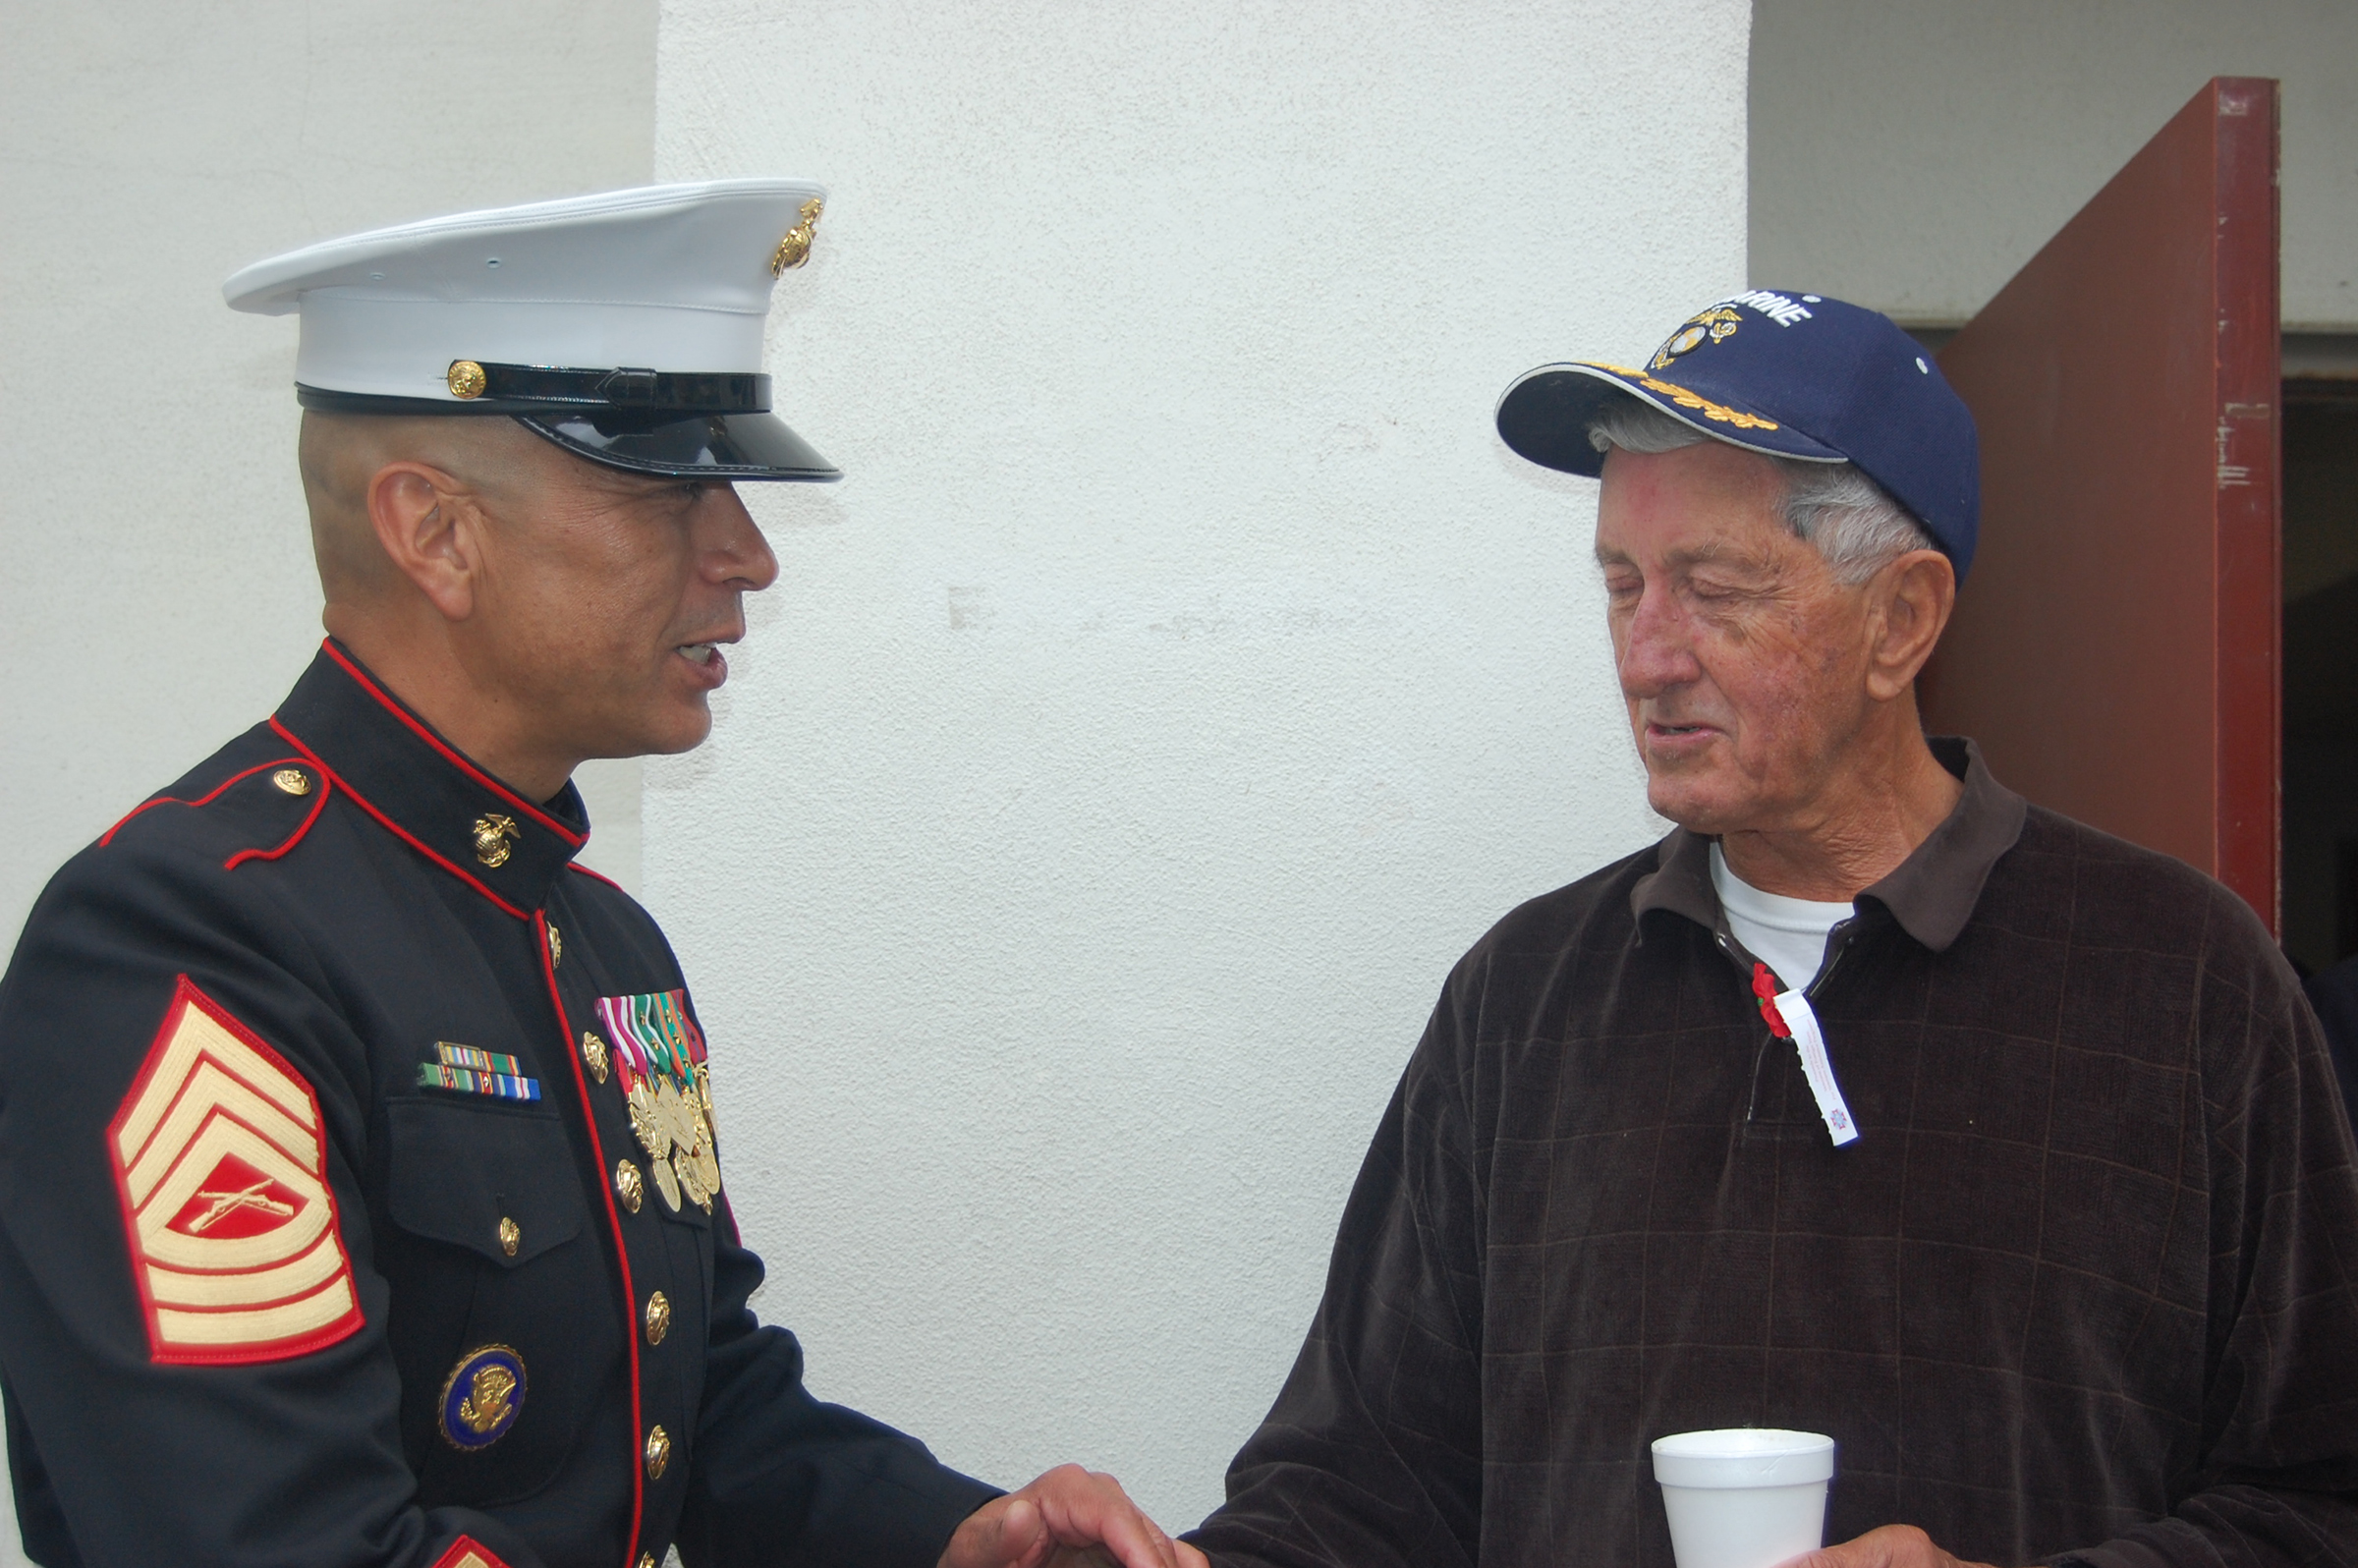 Guest speaker Master Sgt. Julian Gonzales chats with fellow Marine and Lake San Marcos resident Terry Thielen after the ceremony. Photo by Bianca Kaplanek